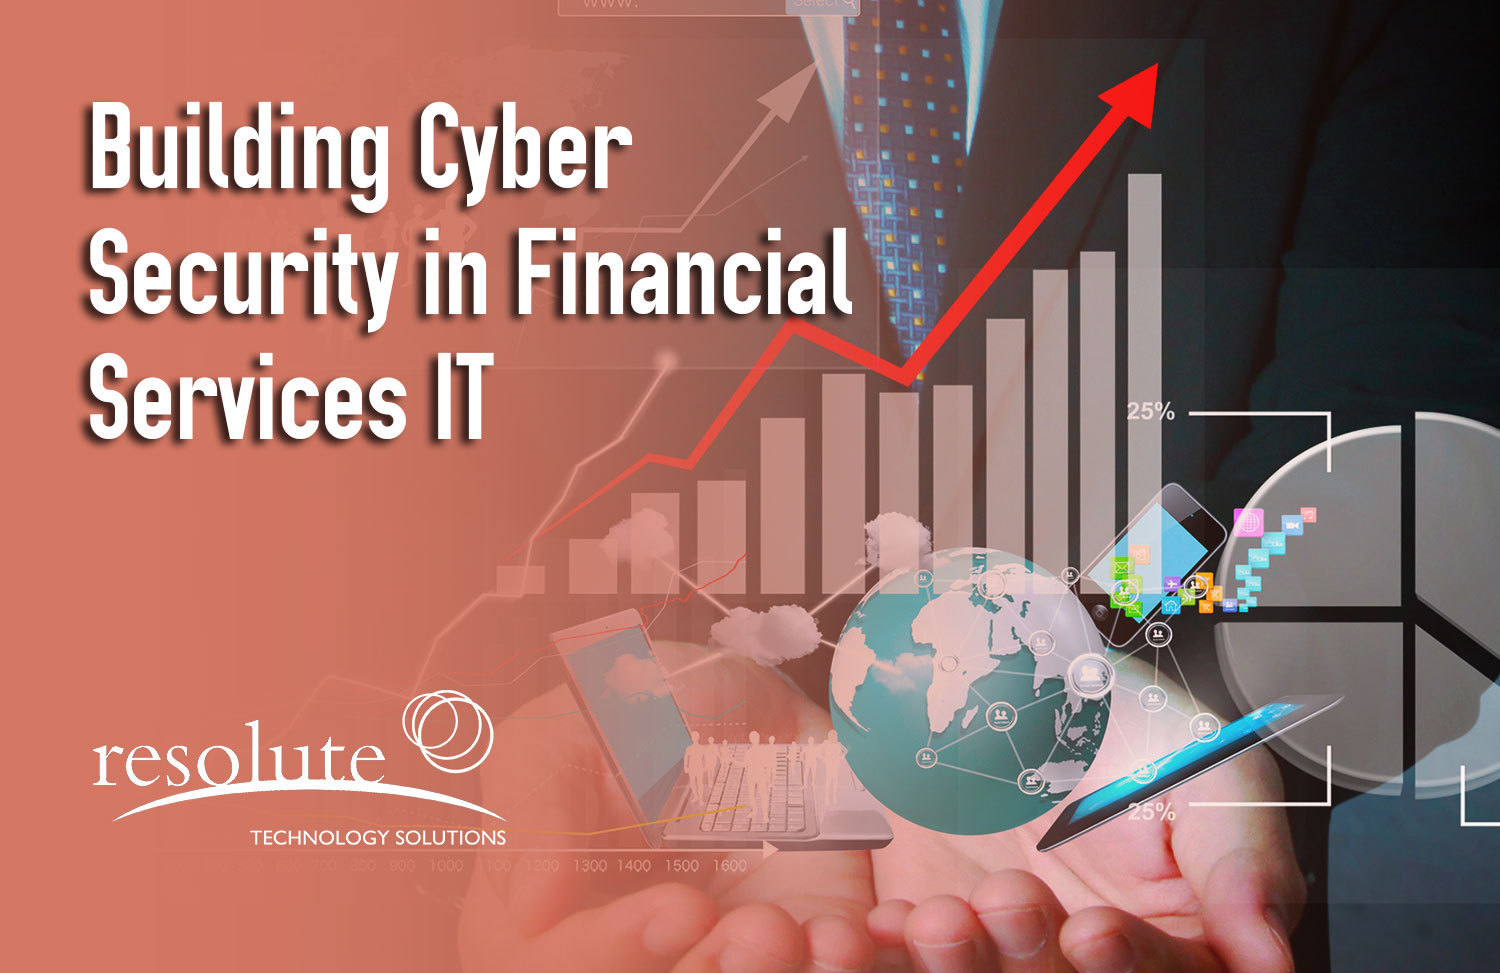 How to Build Cyber Security in Financial Services IT